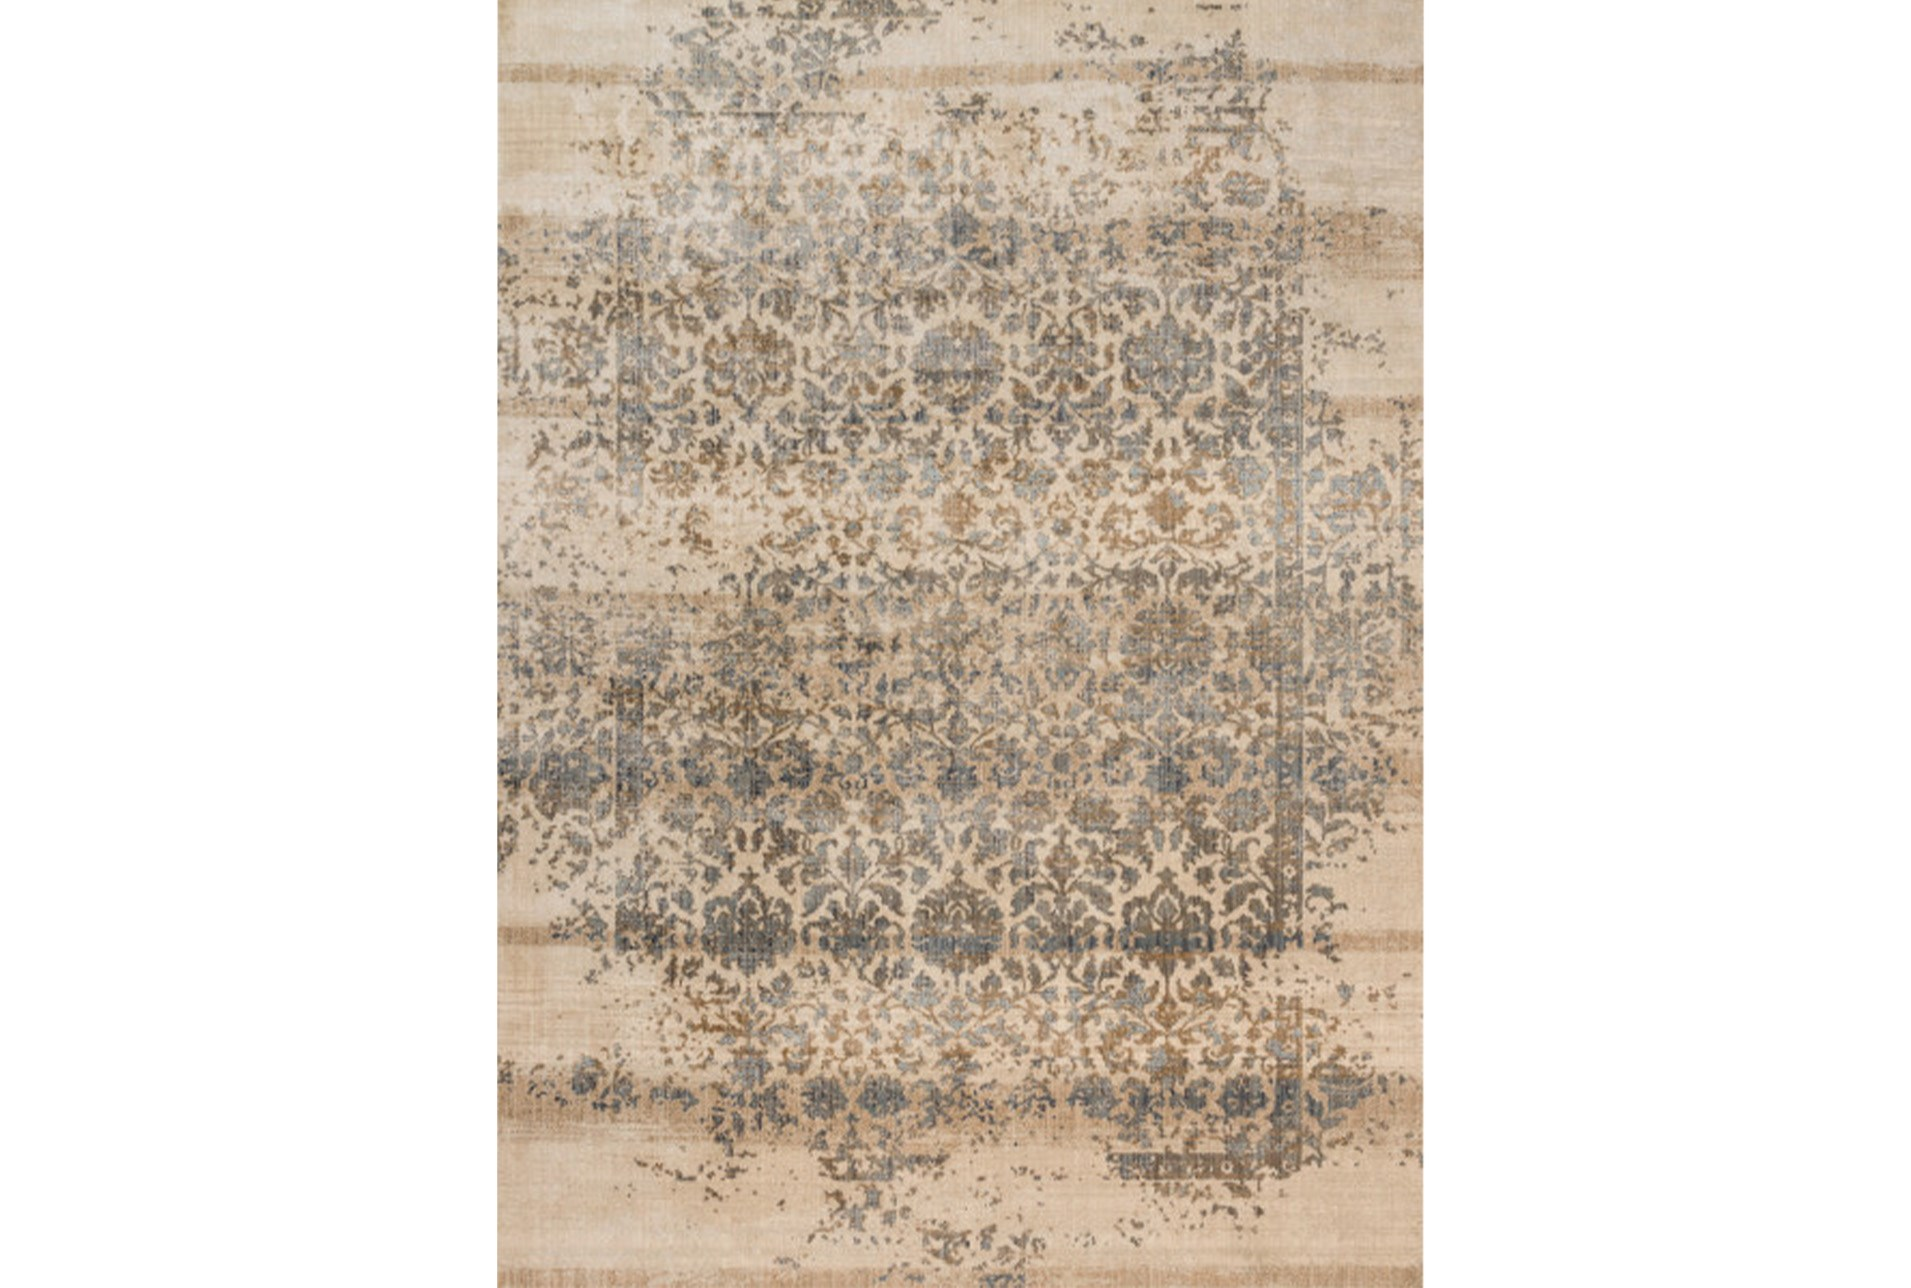 94x130 Rug Magnolia Home Kivi Ivory Quarry By Joanna Gaines Qty 1 Has Been Successfully Added To Your Cart